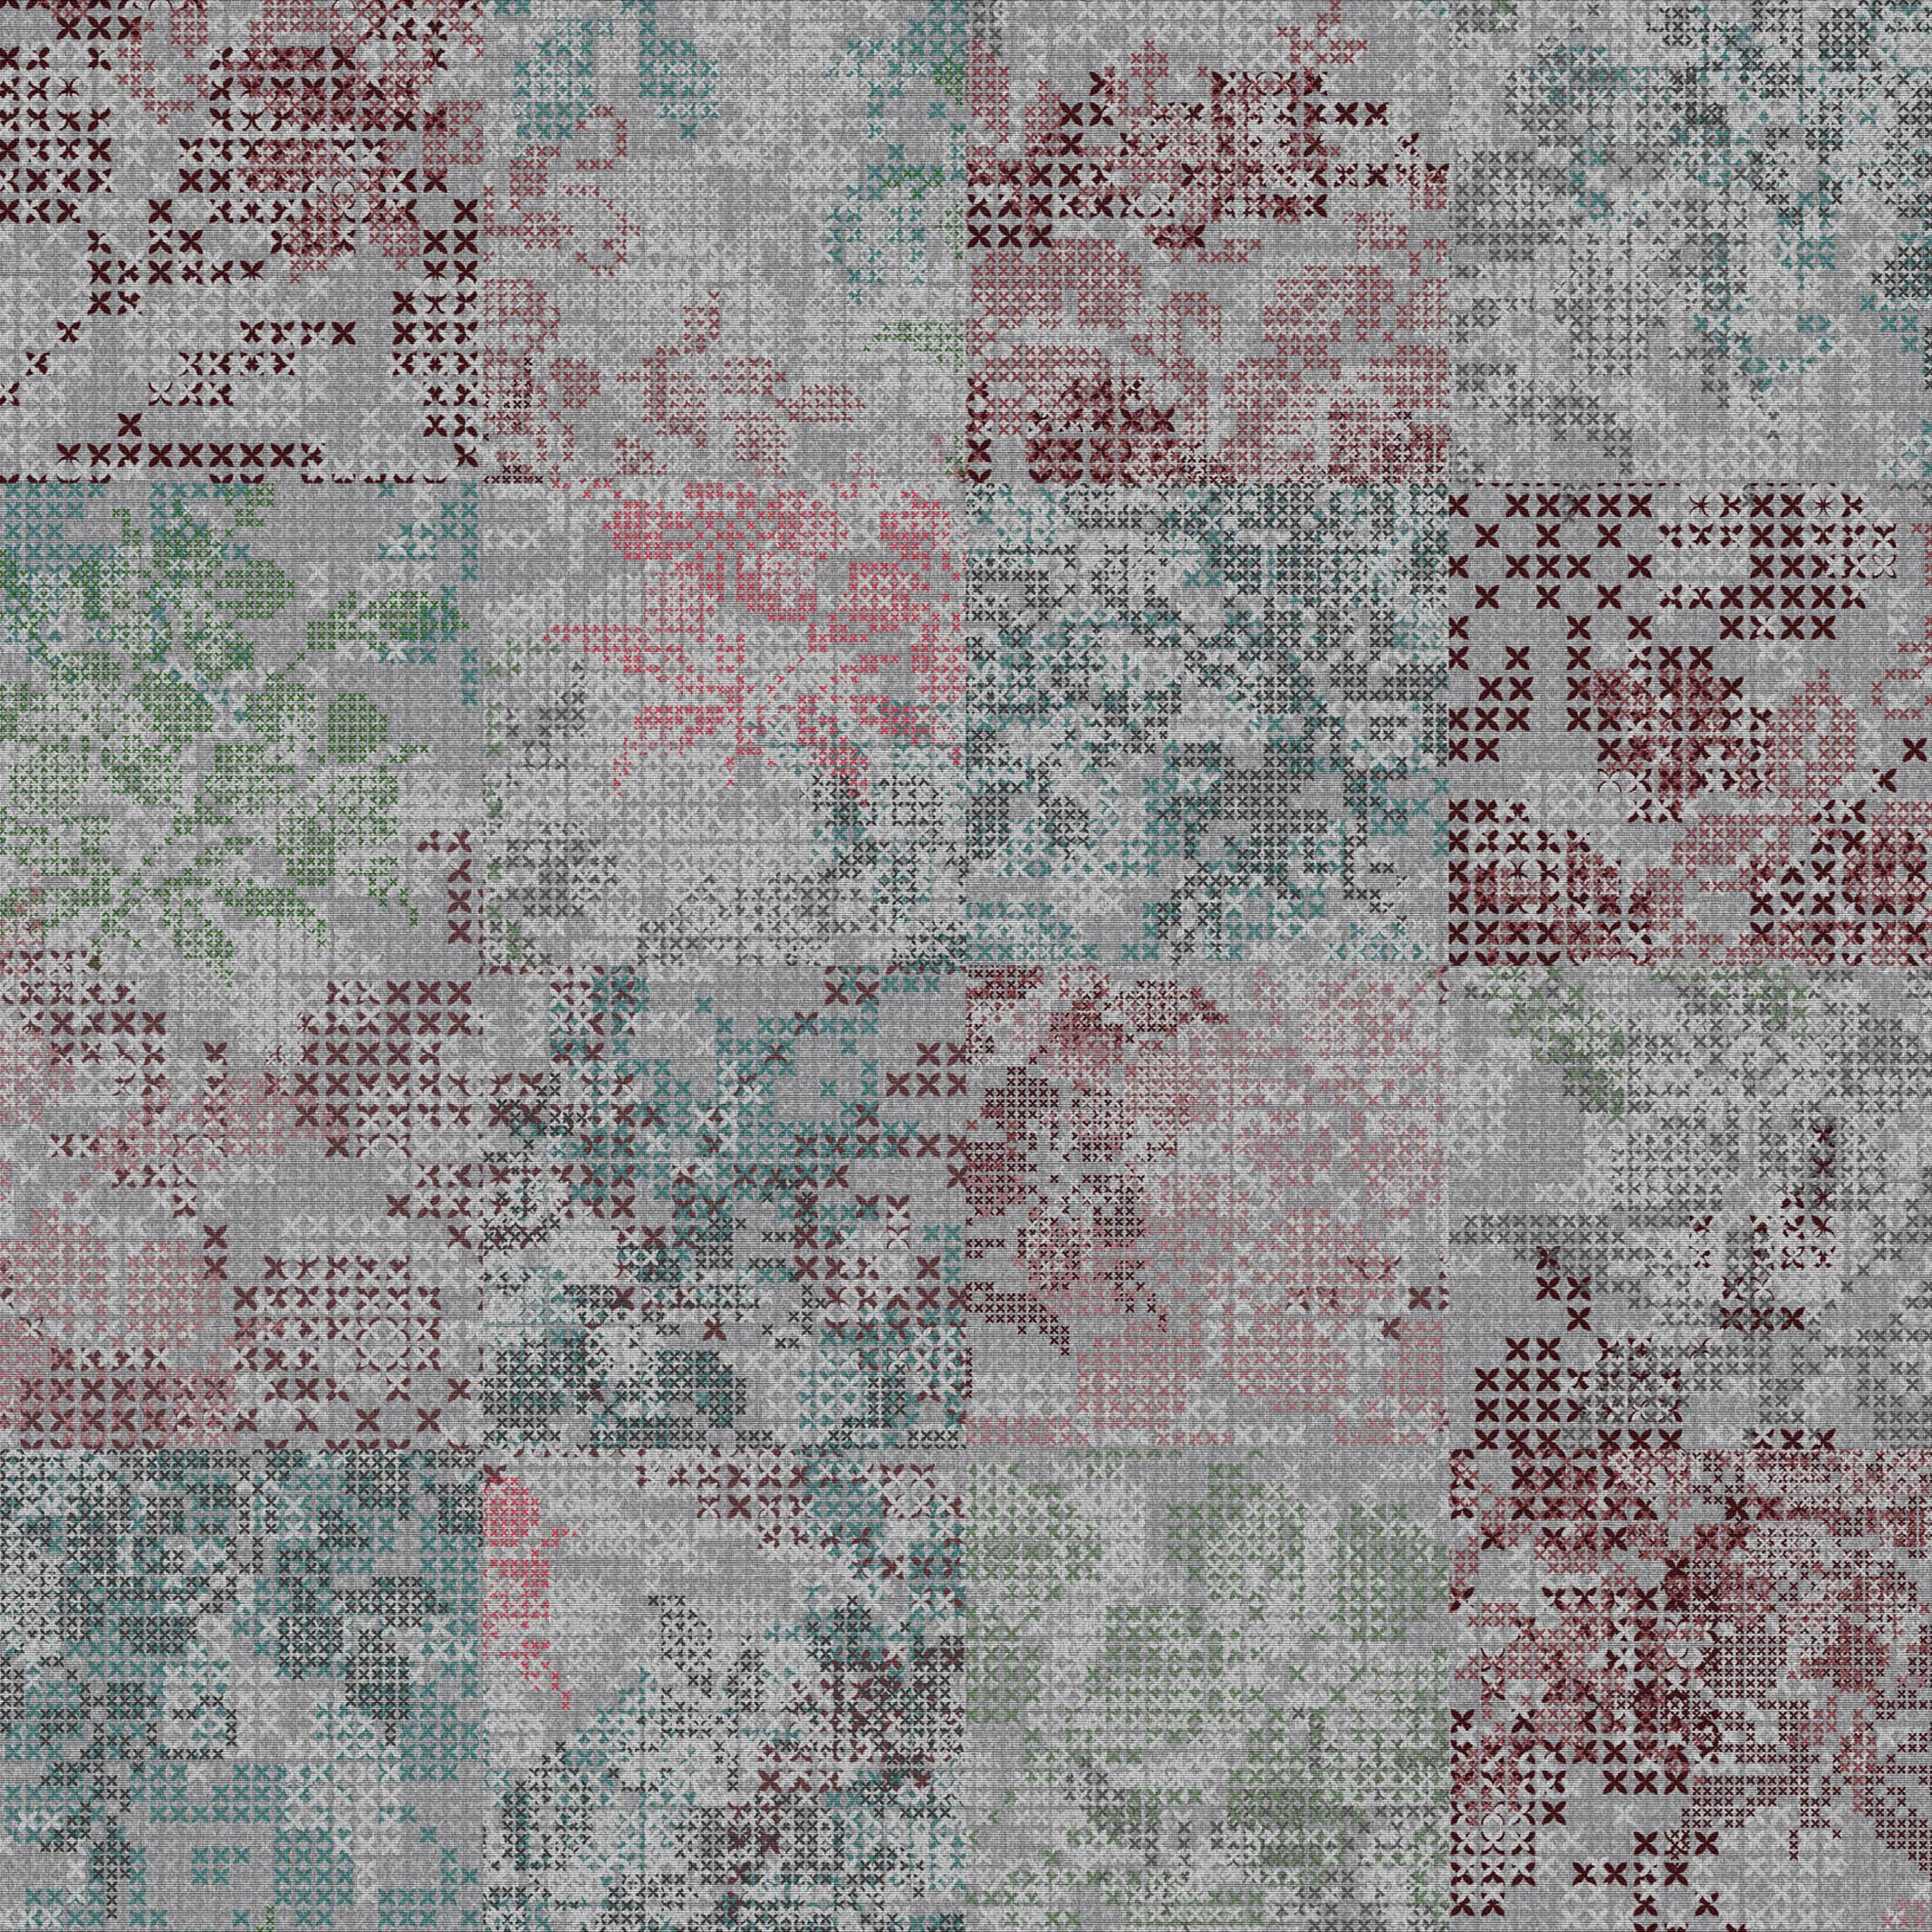 Patterned plastic carpet tiles ANTWERP by OBJECT CARPET